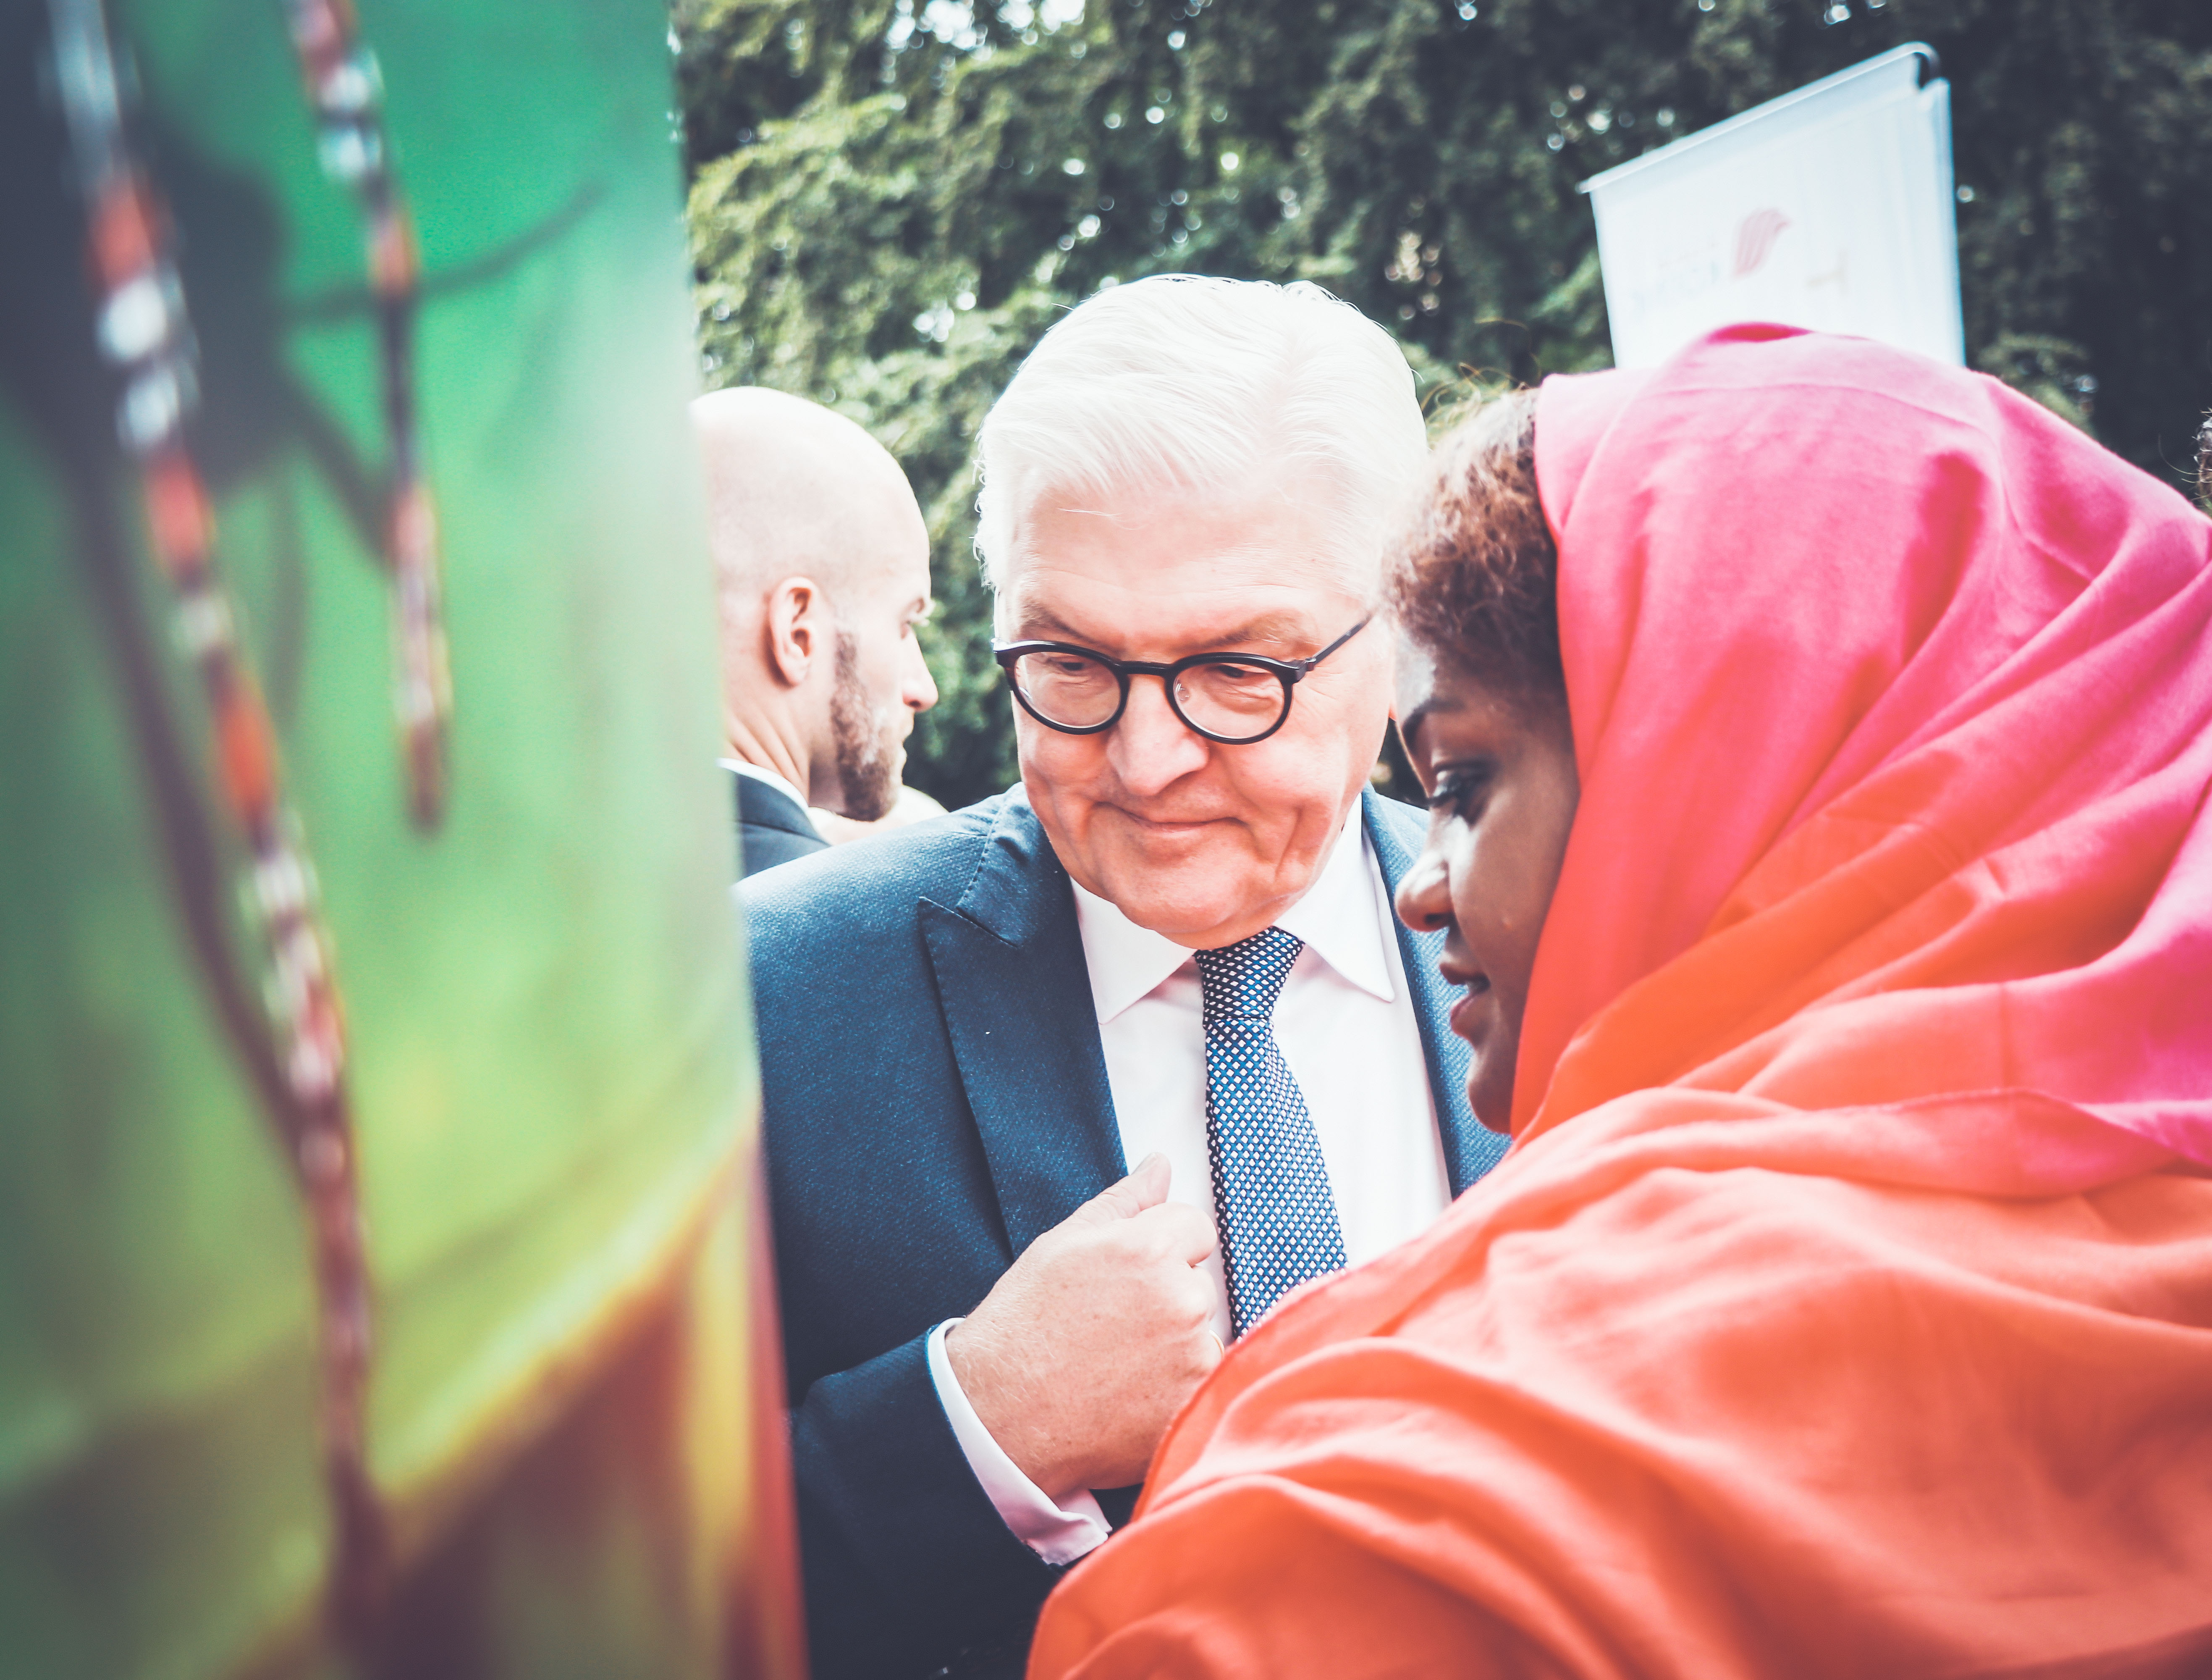 President of Germany Frank-Walter Steinmeier at ZEF Tent